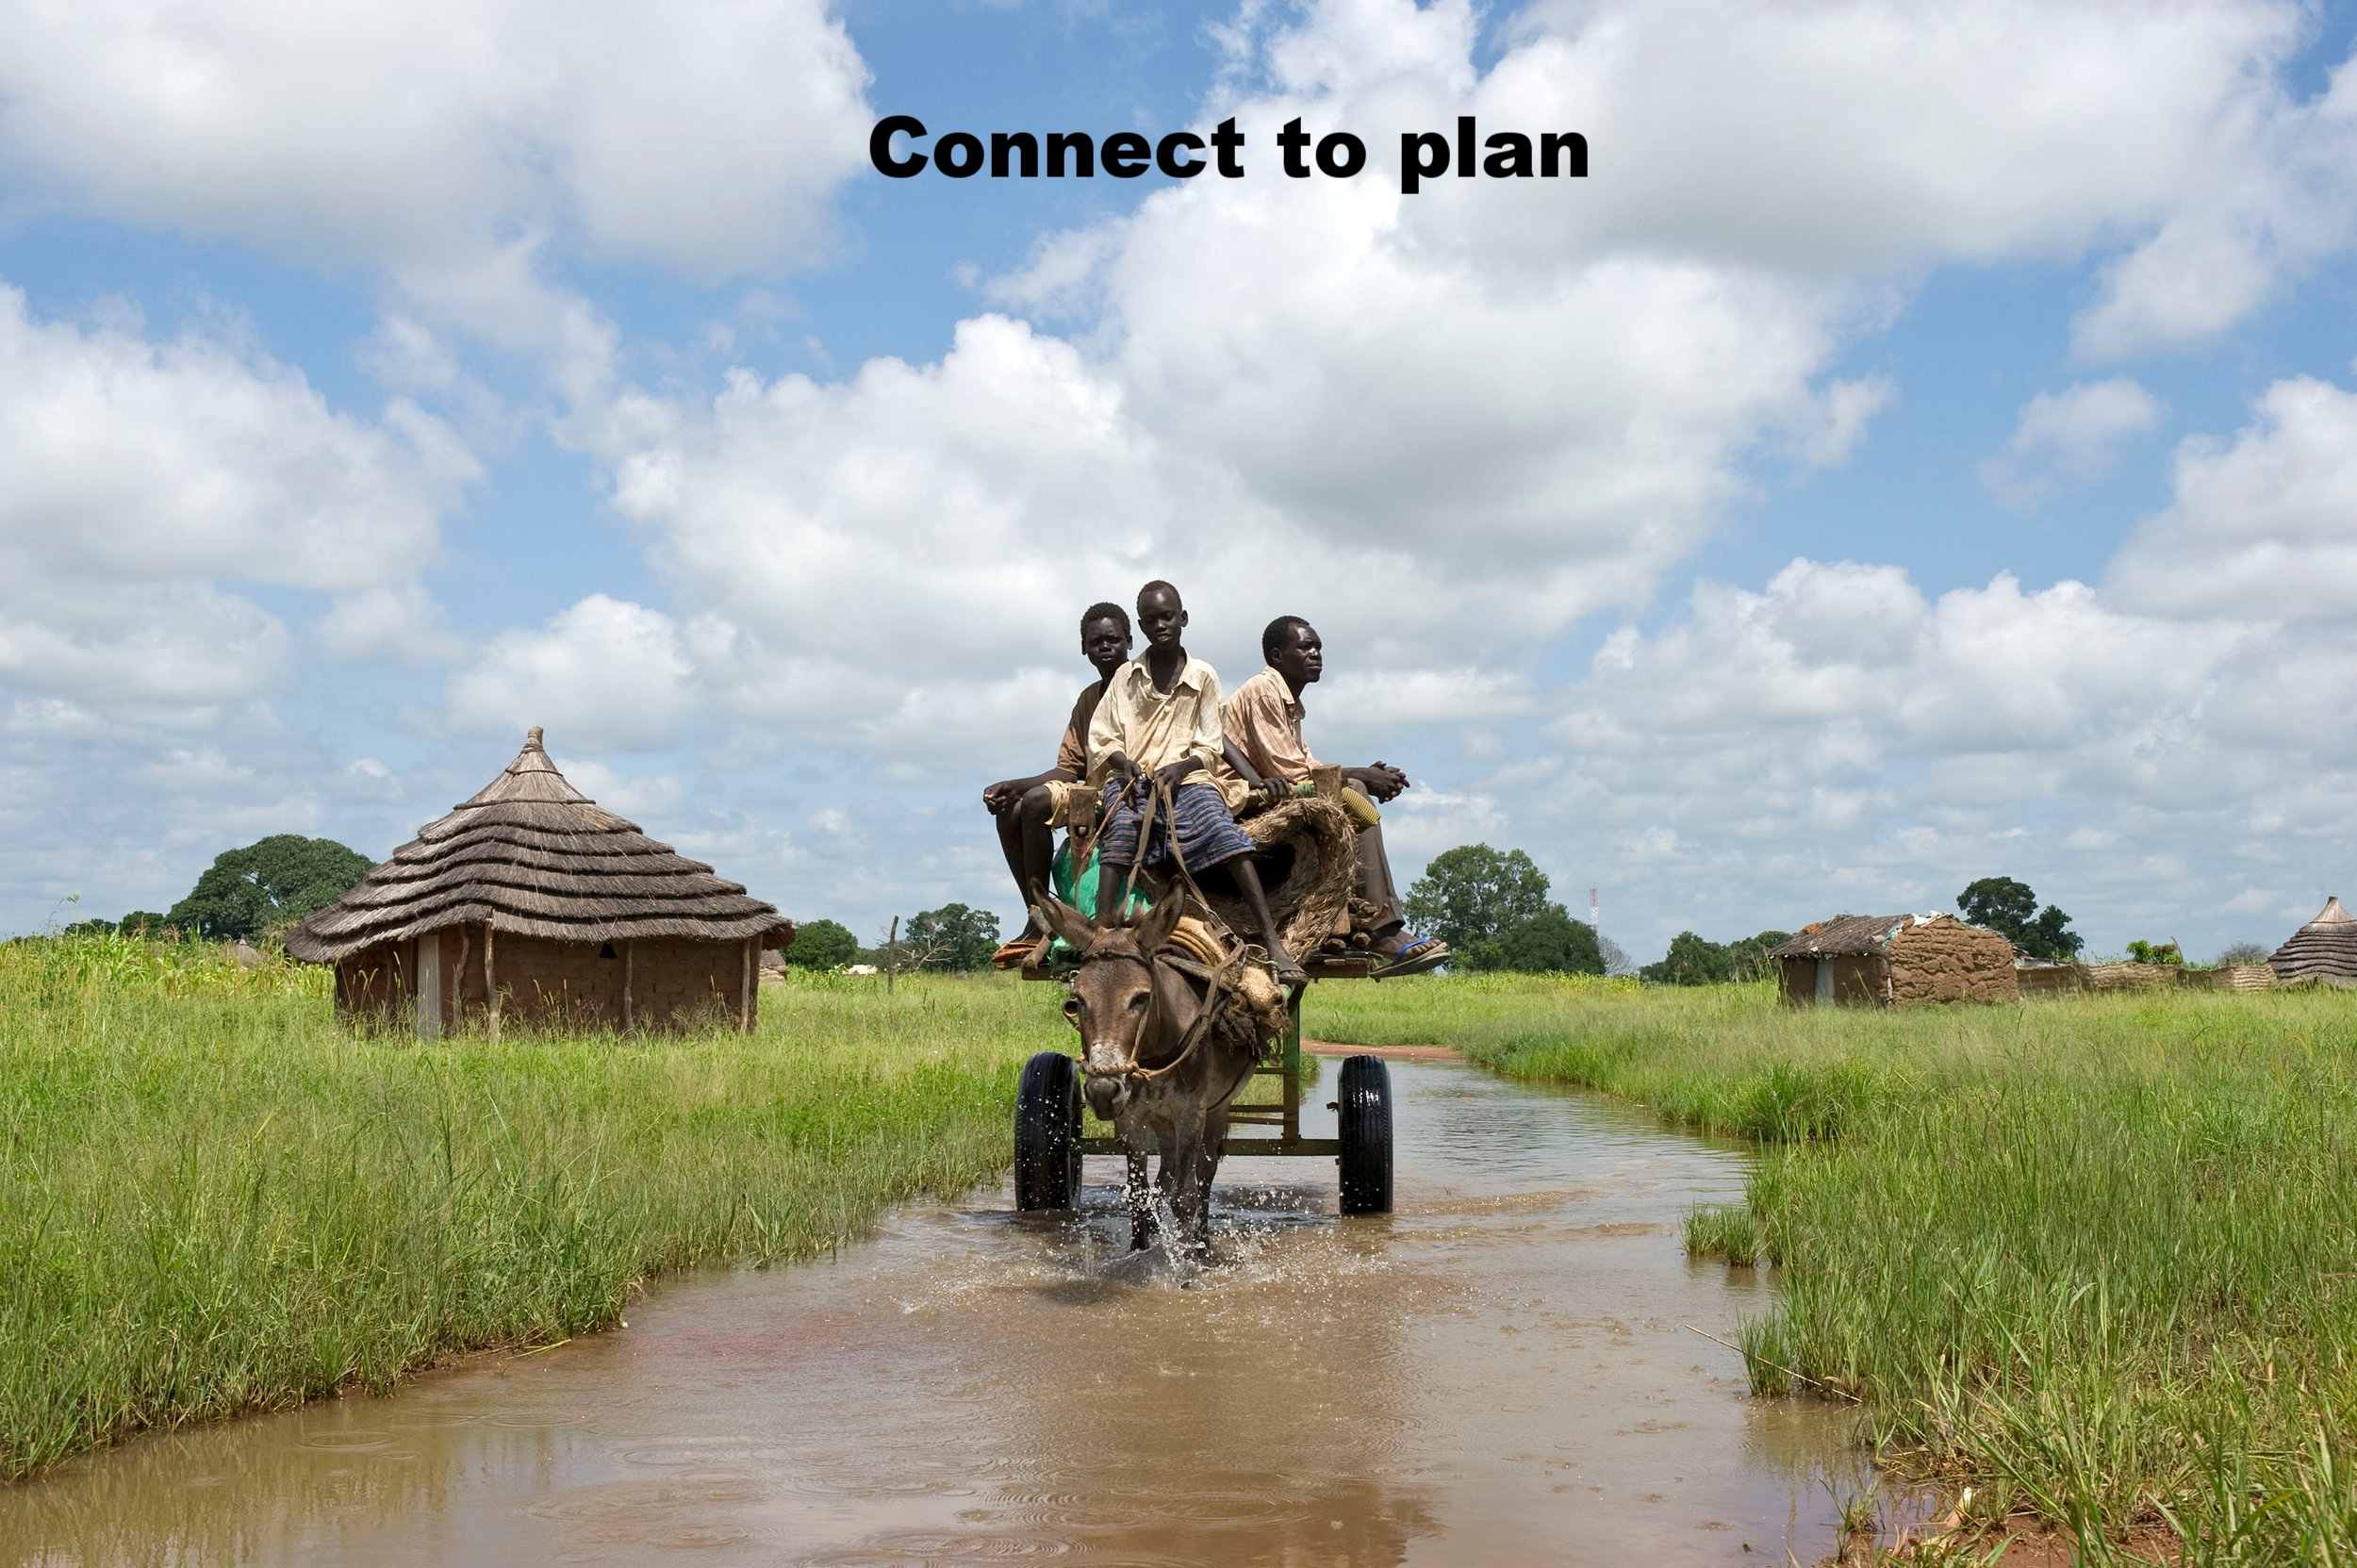 To yield good harvests farmers need to plan, be it staying ahead of the weather or record keeping. Connect to plan is a feature that enables planning through inbuilt customized record keeping and weather alerts. At shiri we understand that a farm is a livelihood. With every step there is critical info hence our feature connect to plan.